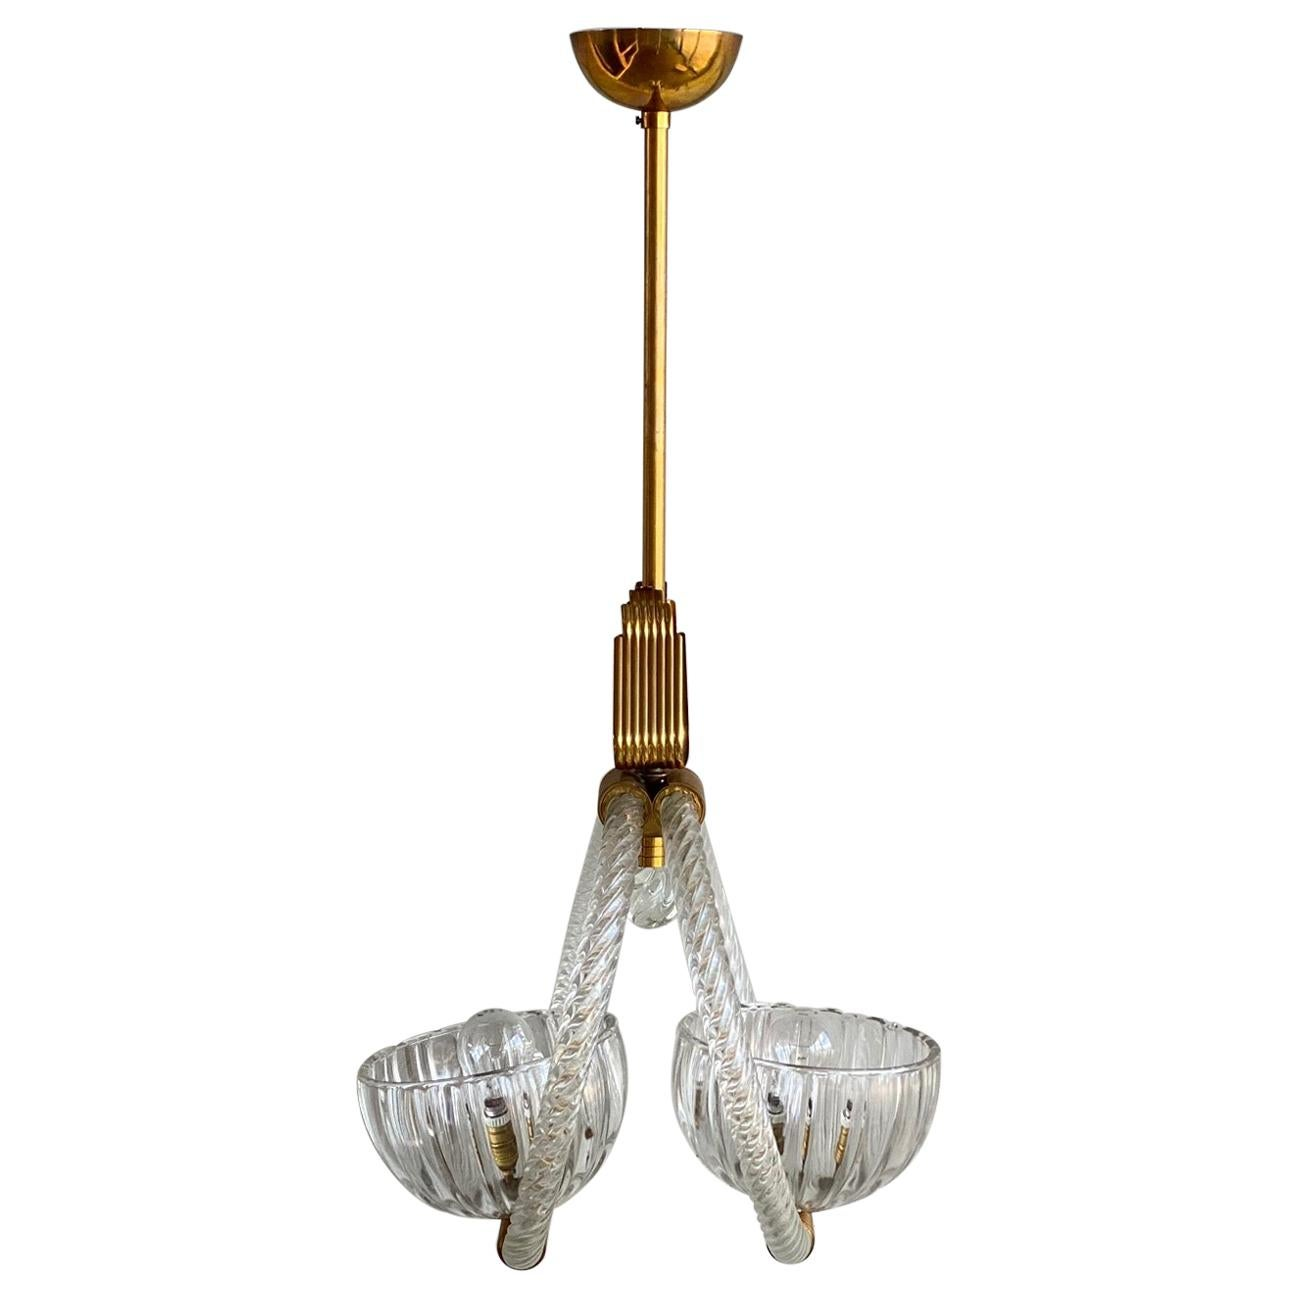 Art Deco Murano Glas Pendant Lamp by Barovier & Toso, 1930s with brass